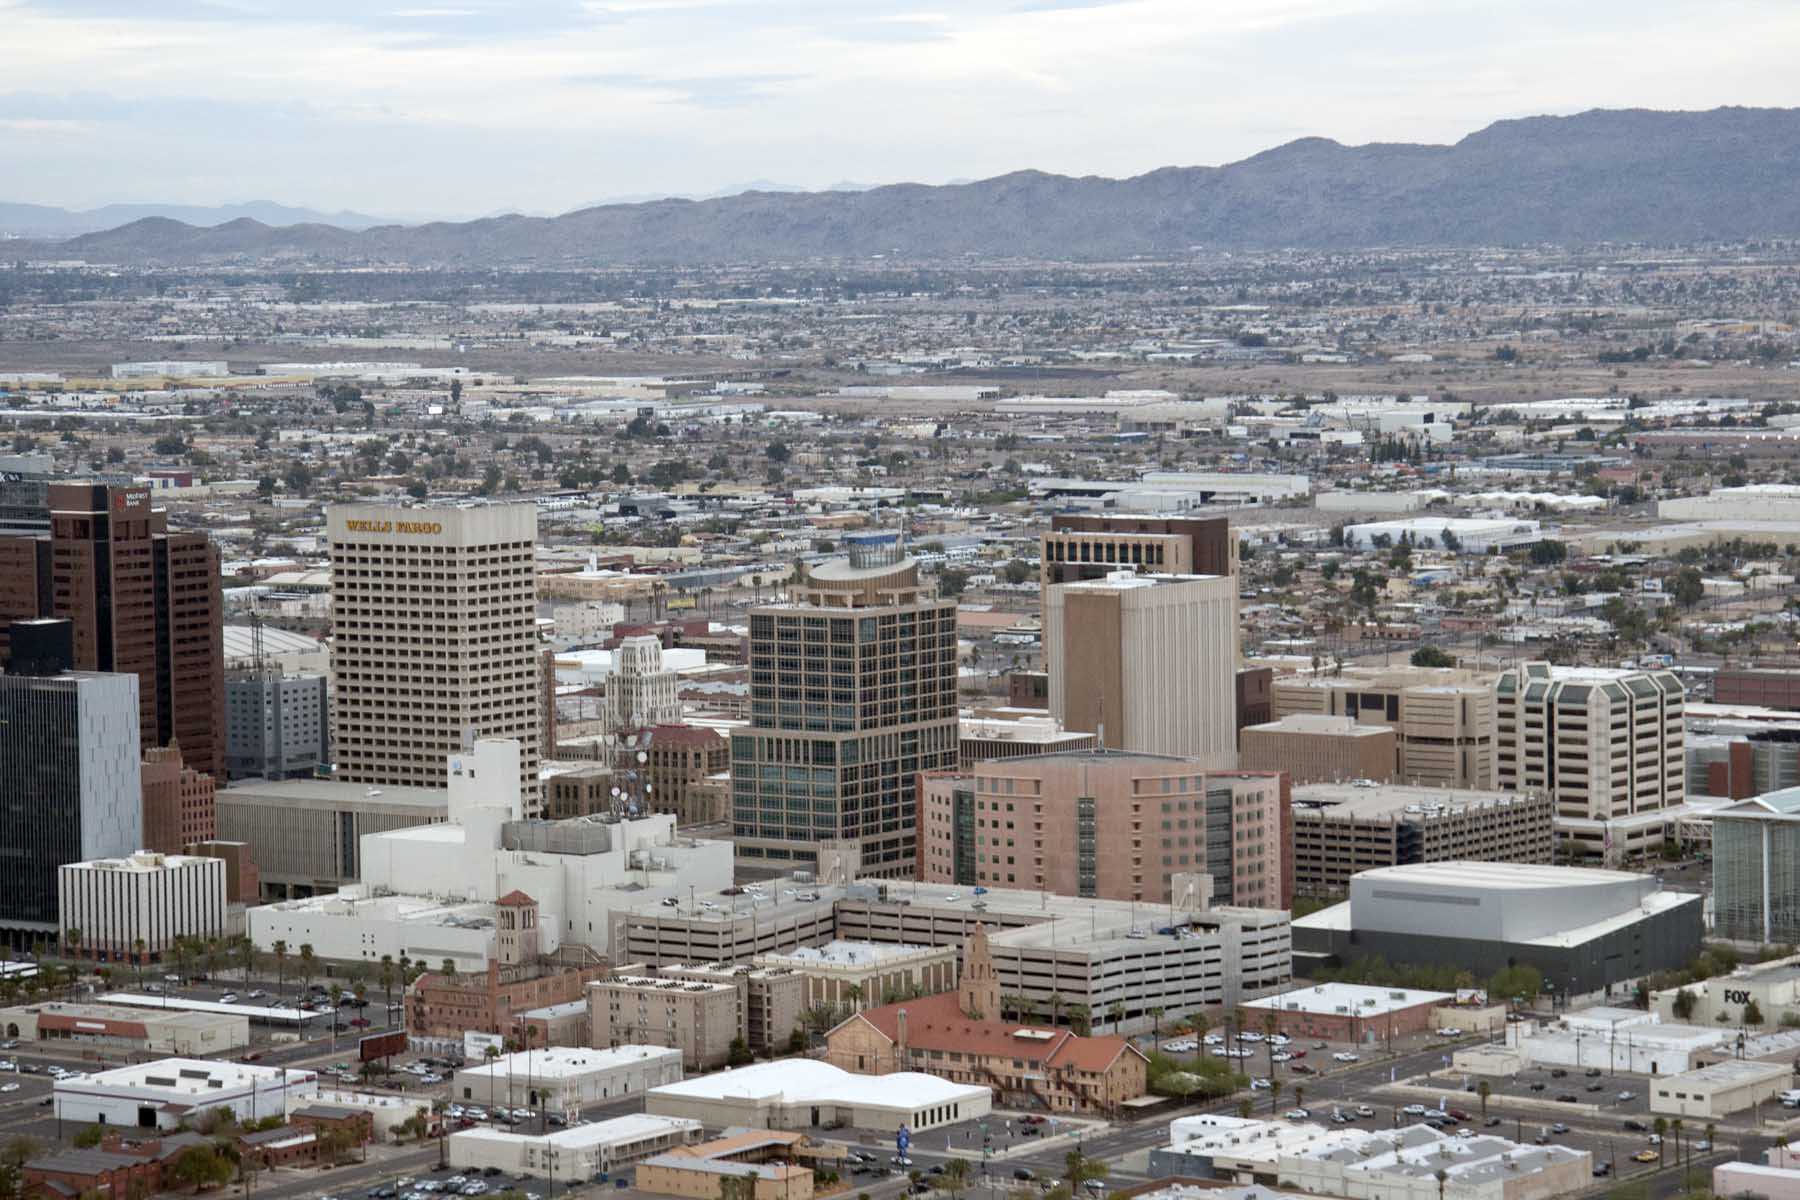 Aerial image of Phoenix from downtown